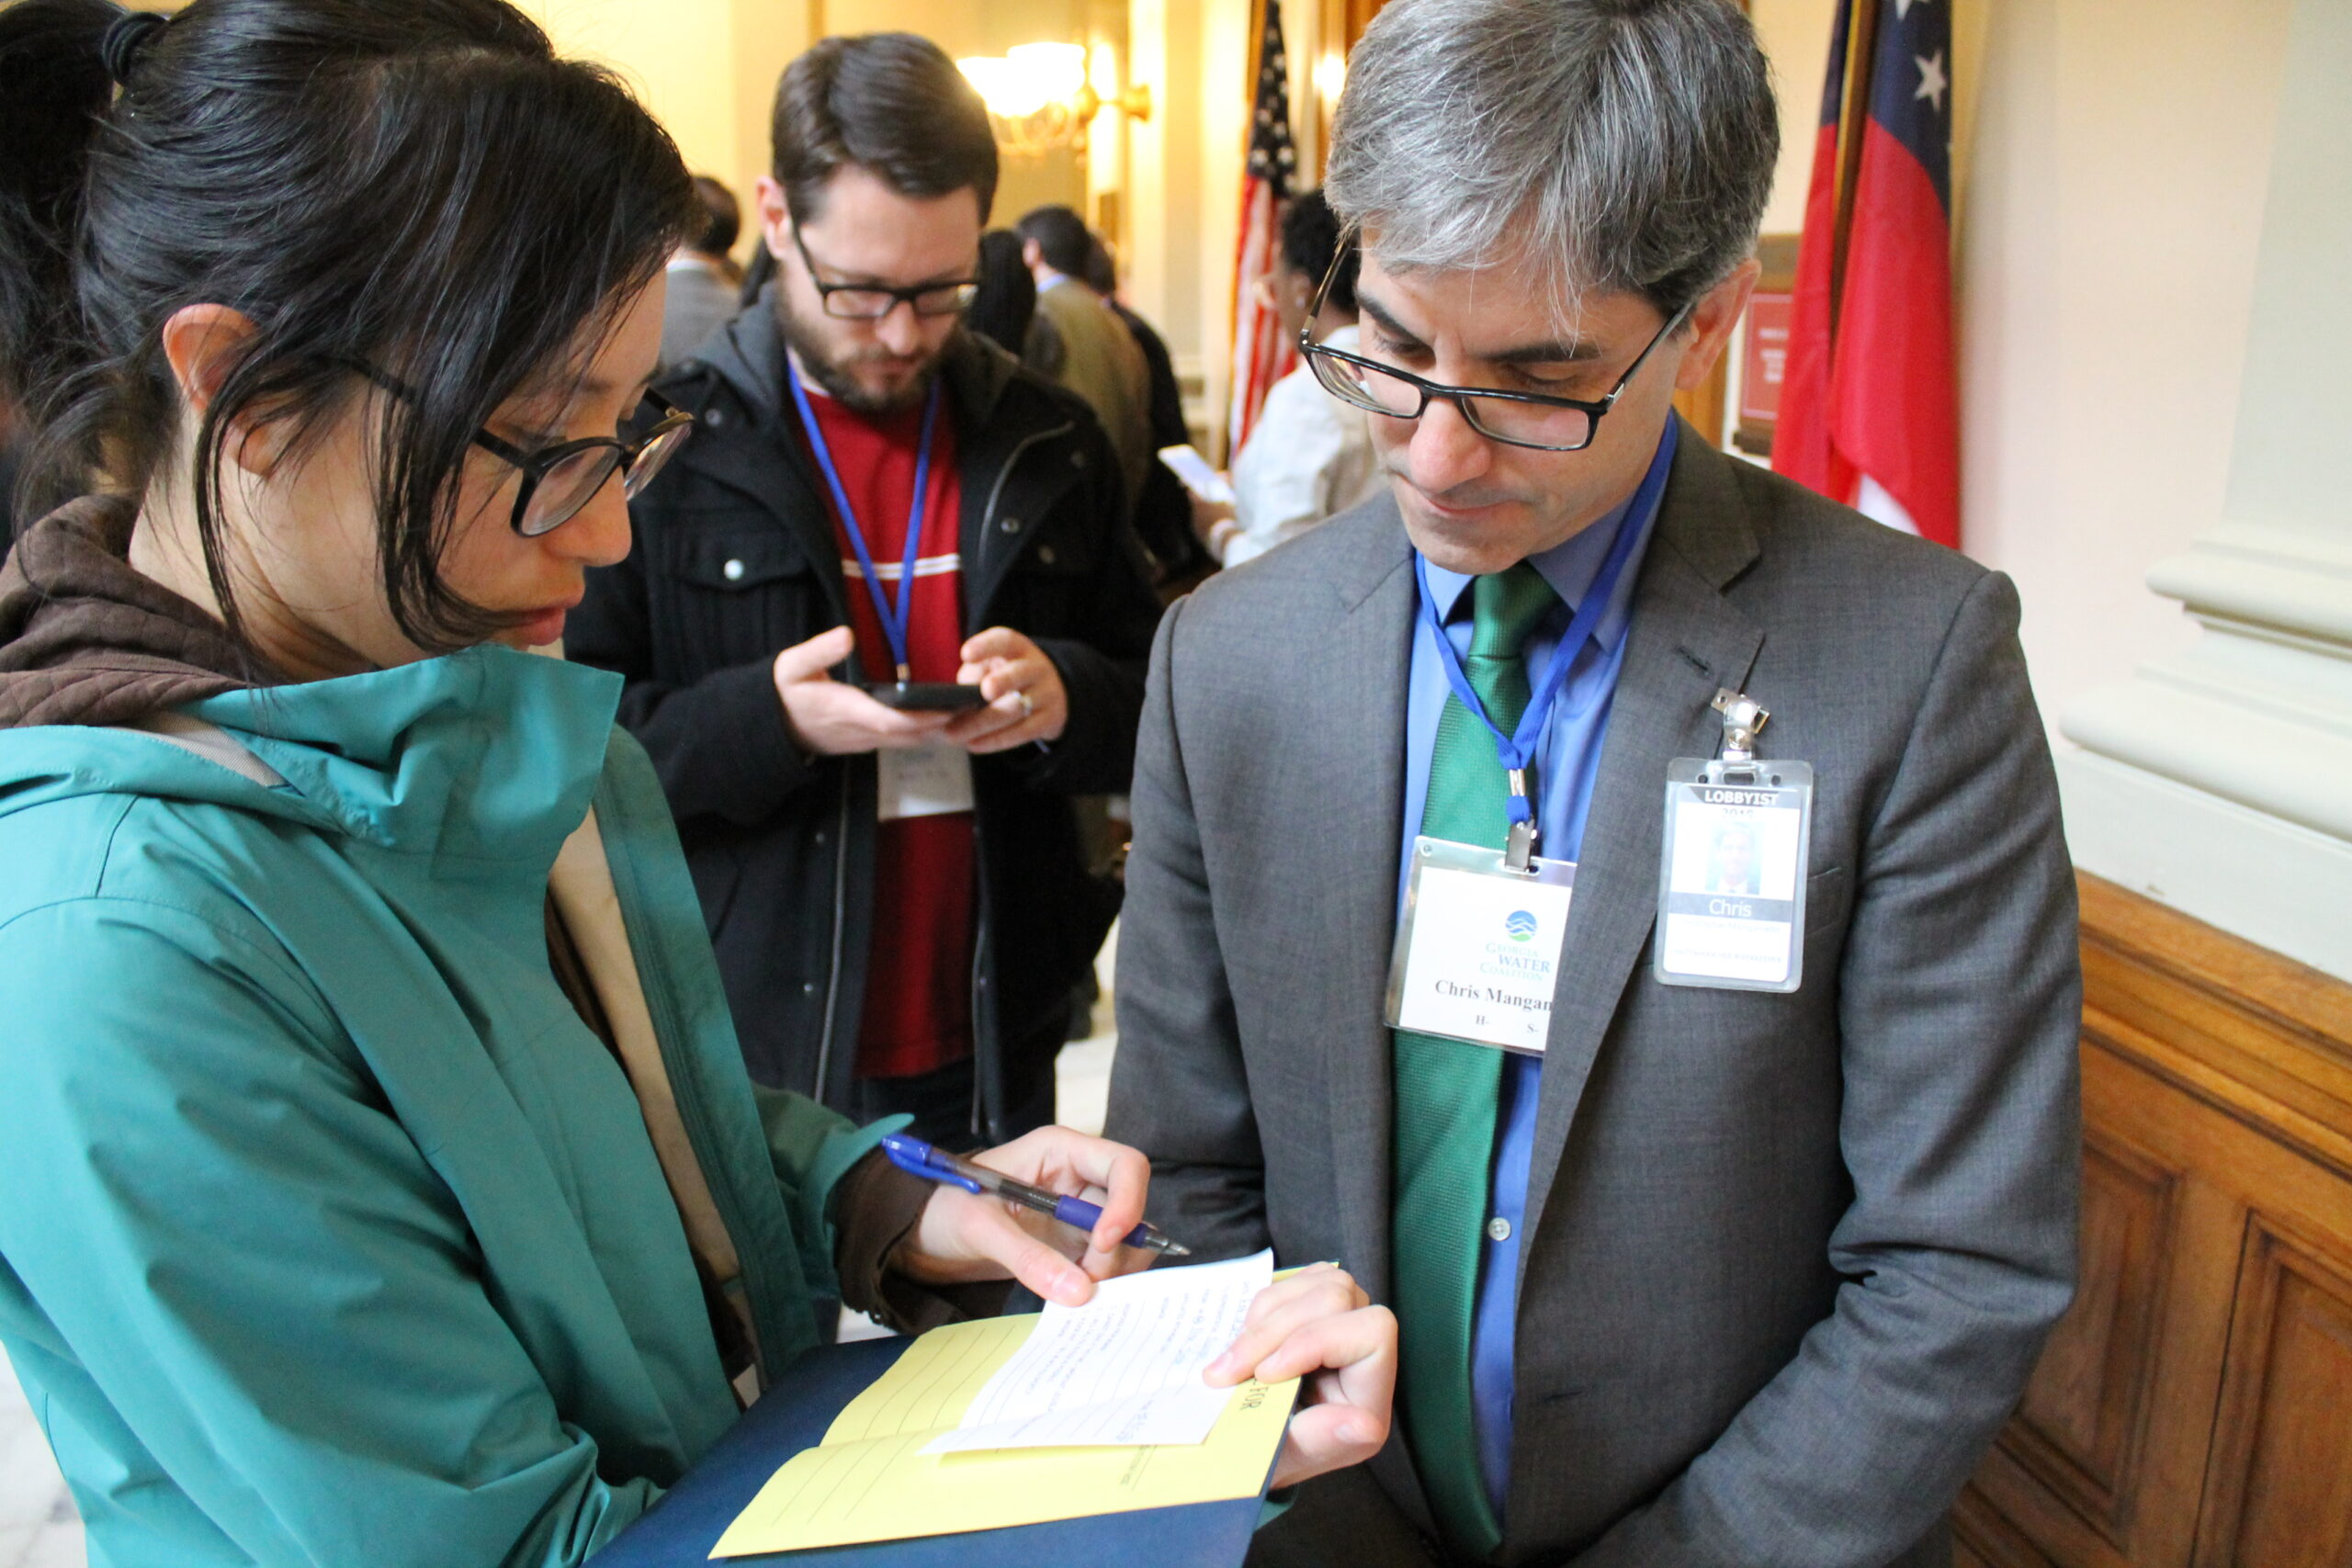 Man with woman look at paper in state building